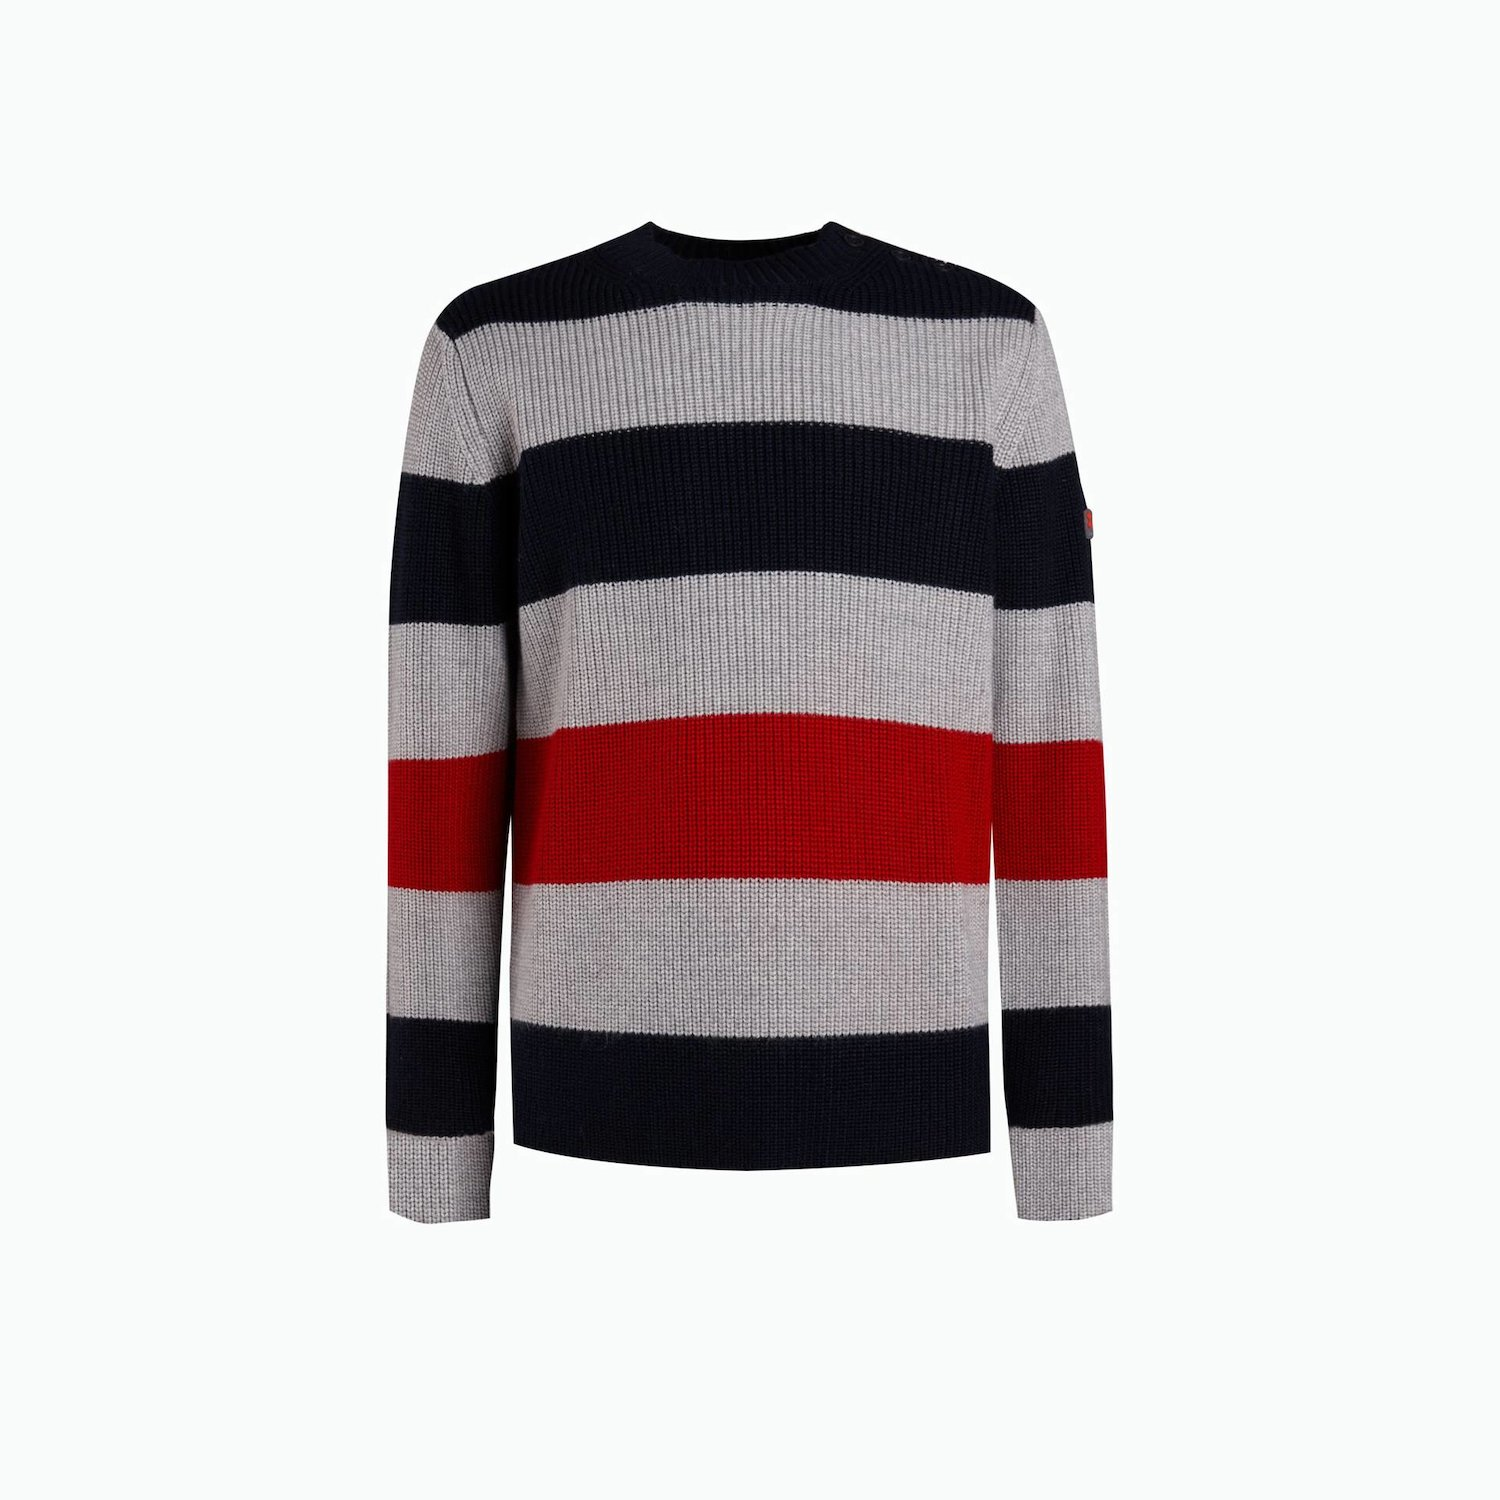 Maglia B141 - Fancy Stripes